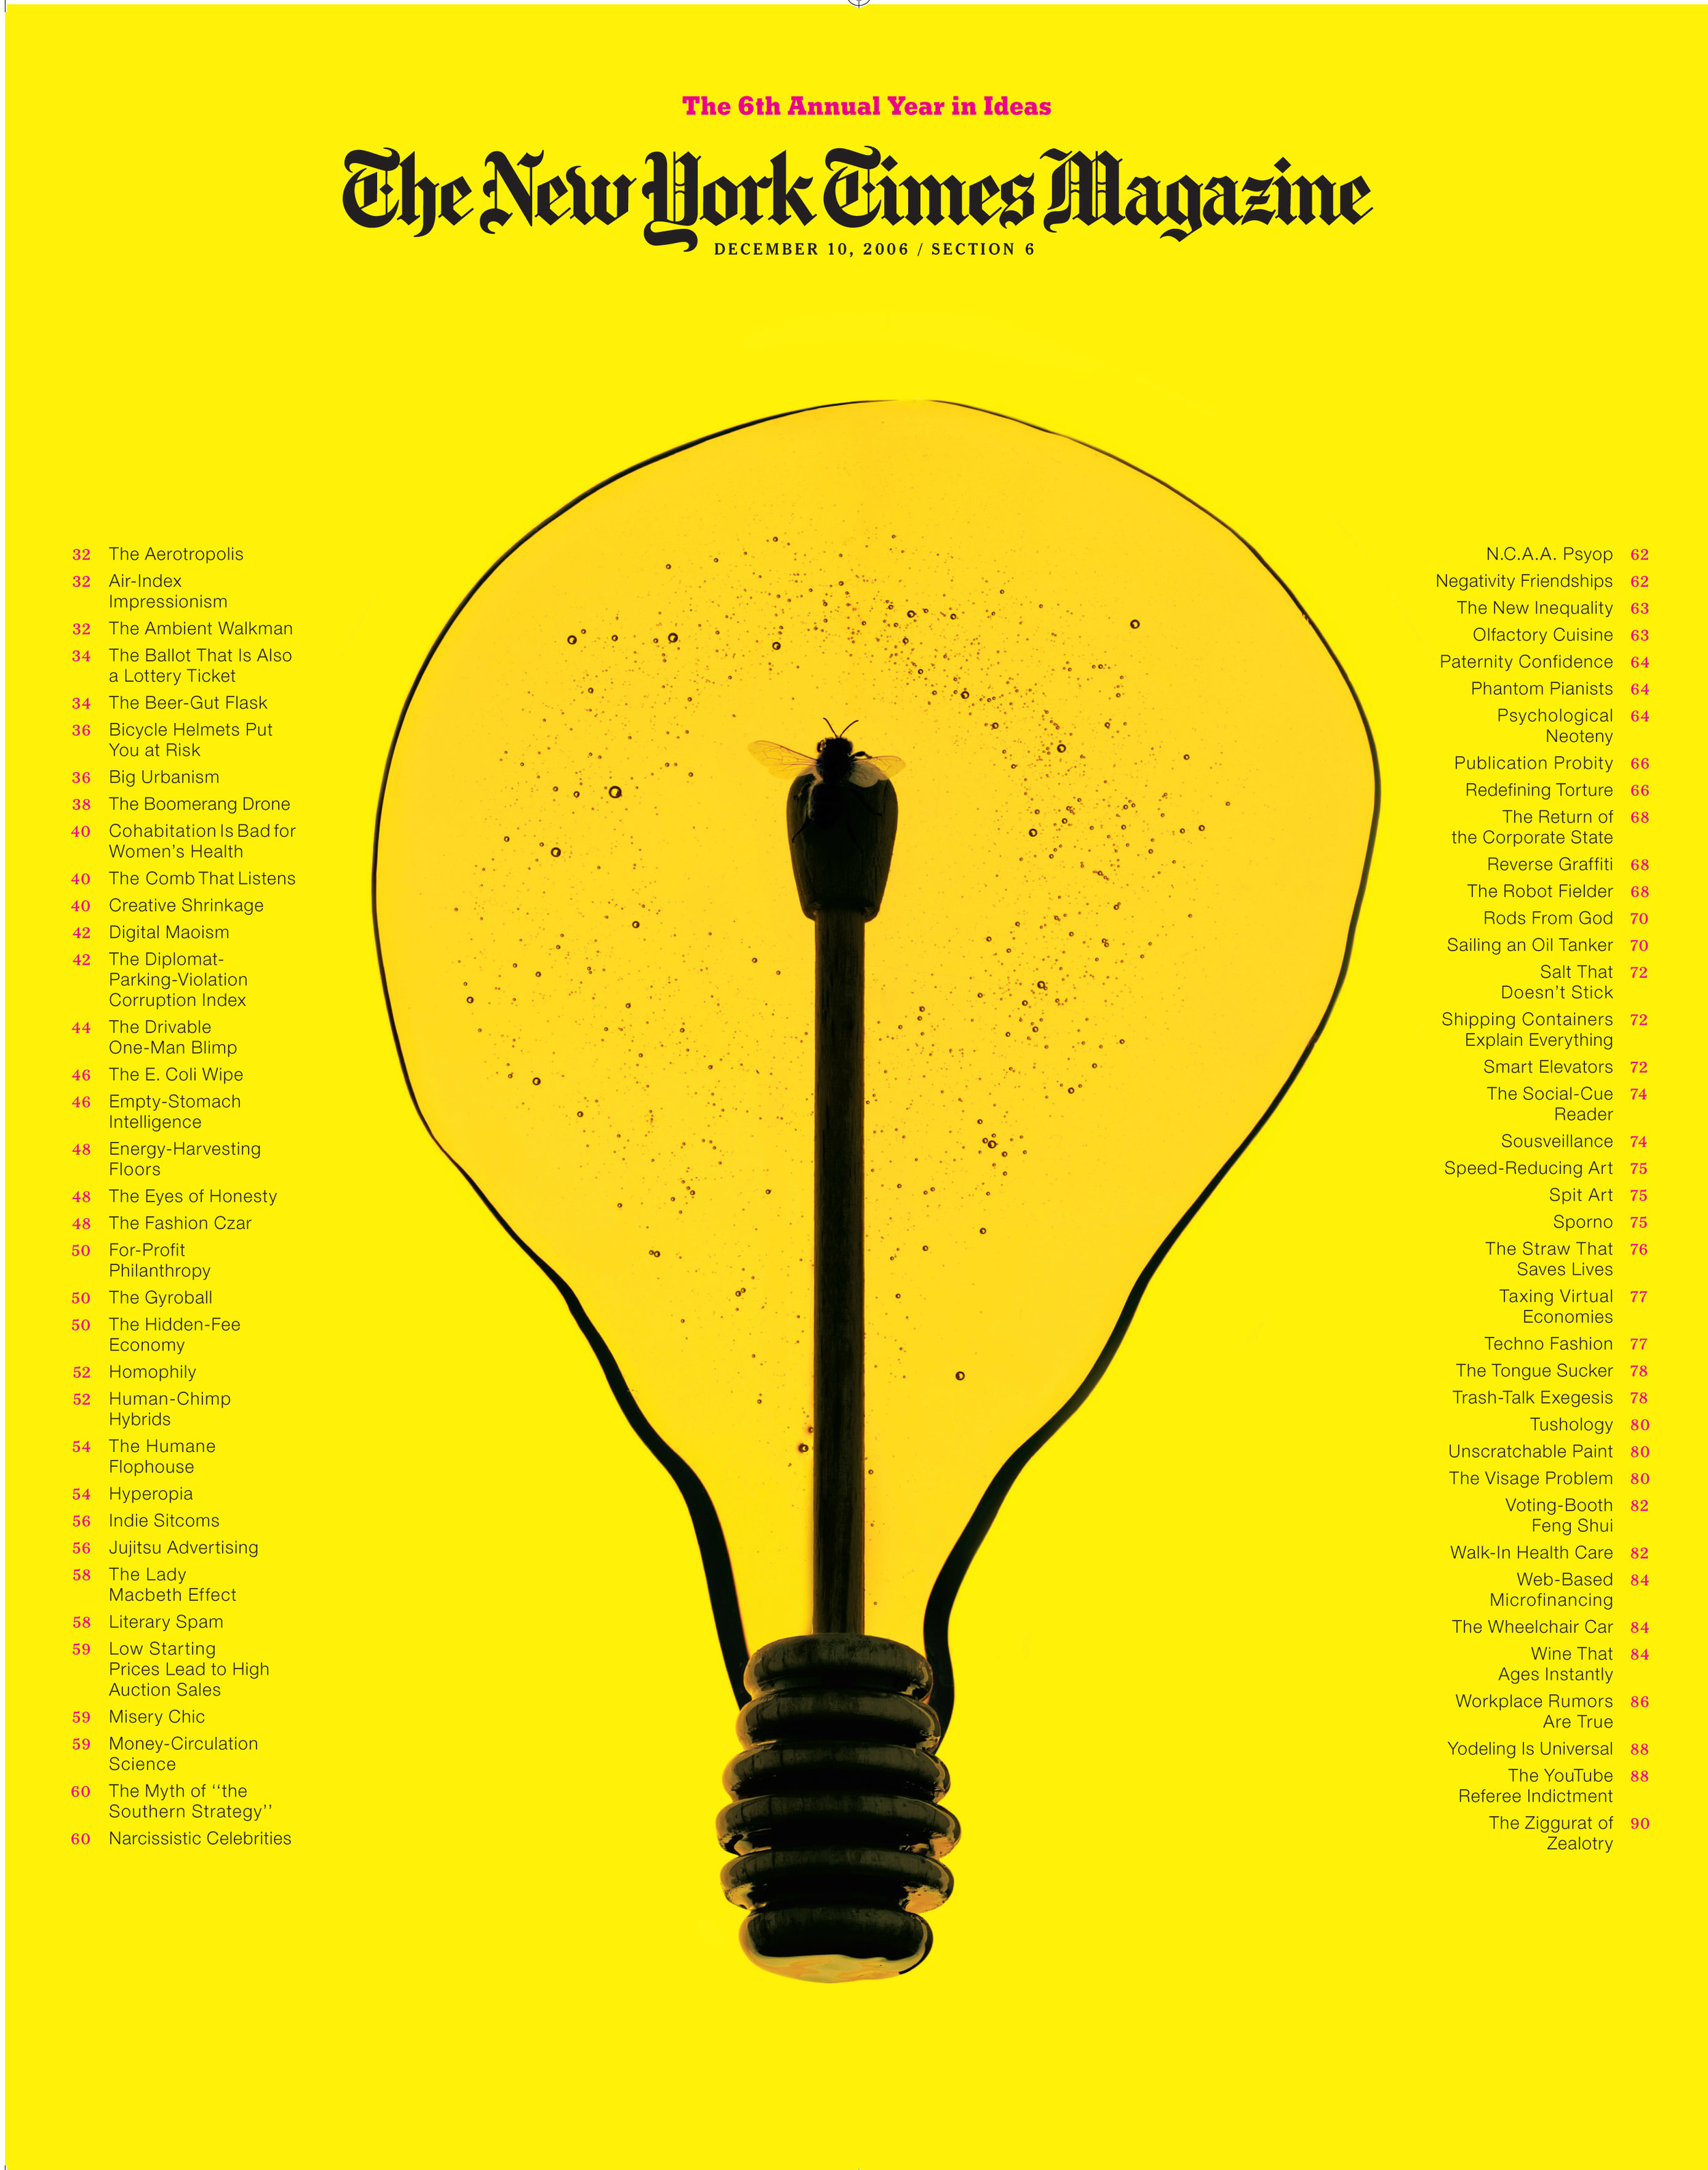 12.10.06.Ideas Cover.jpg